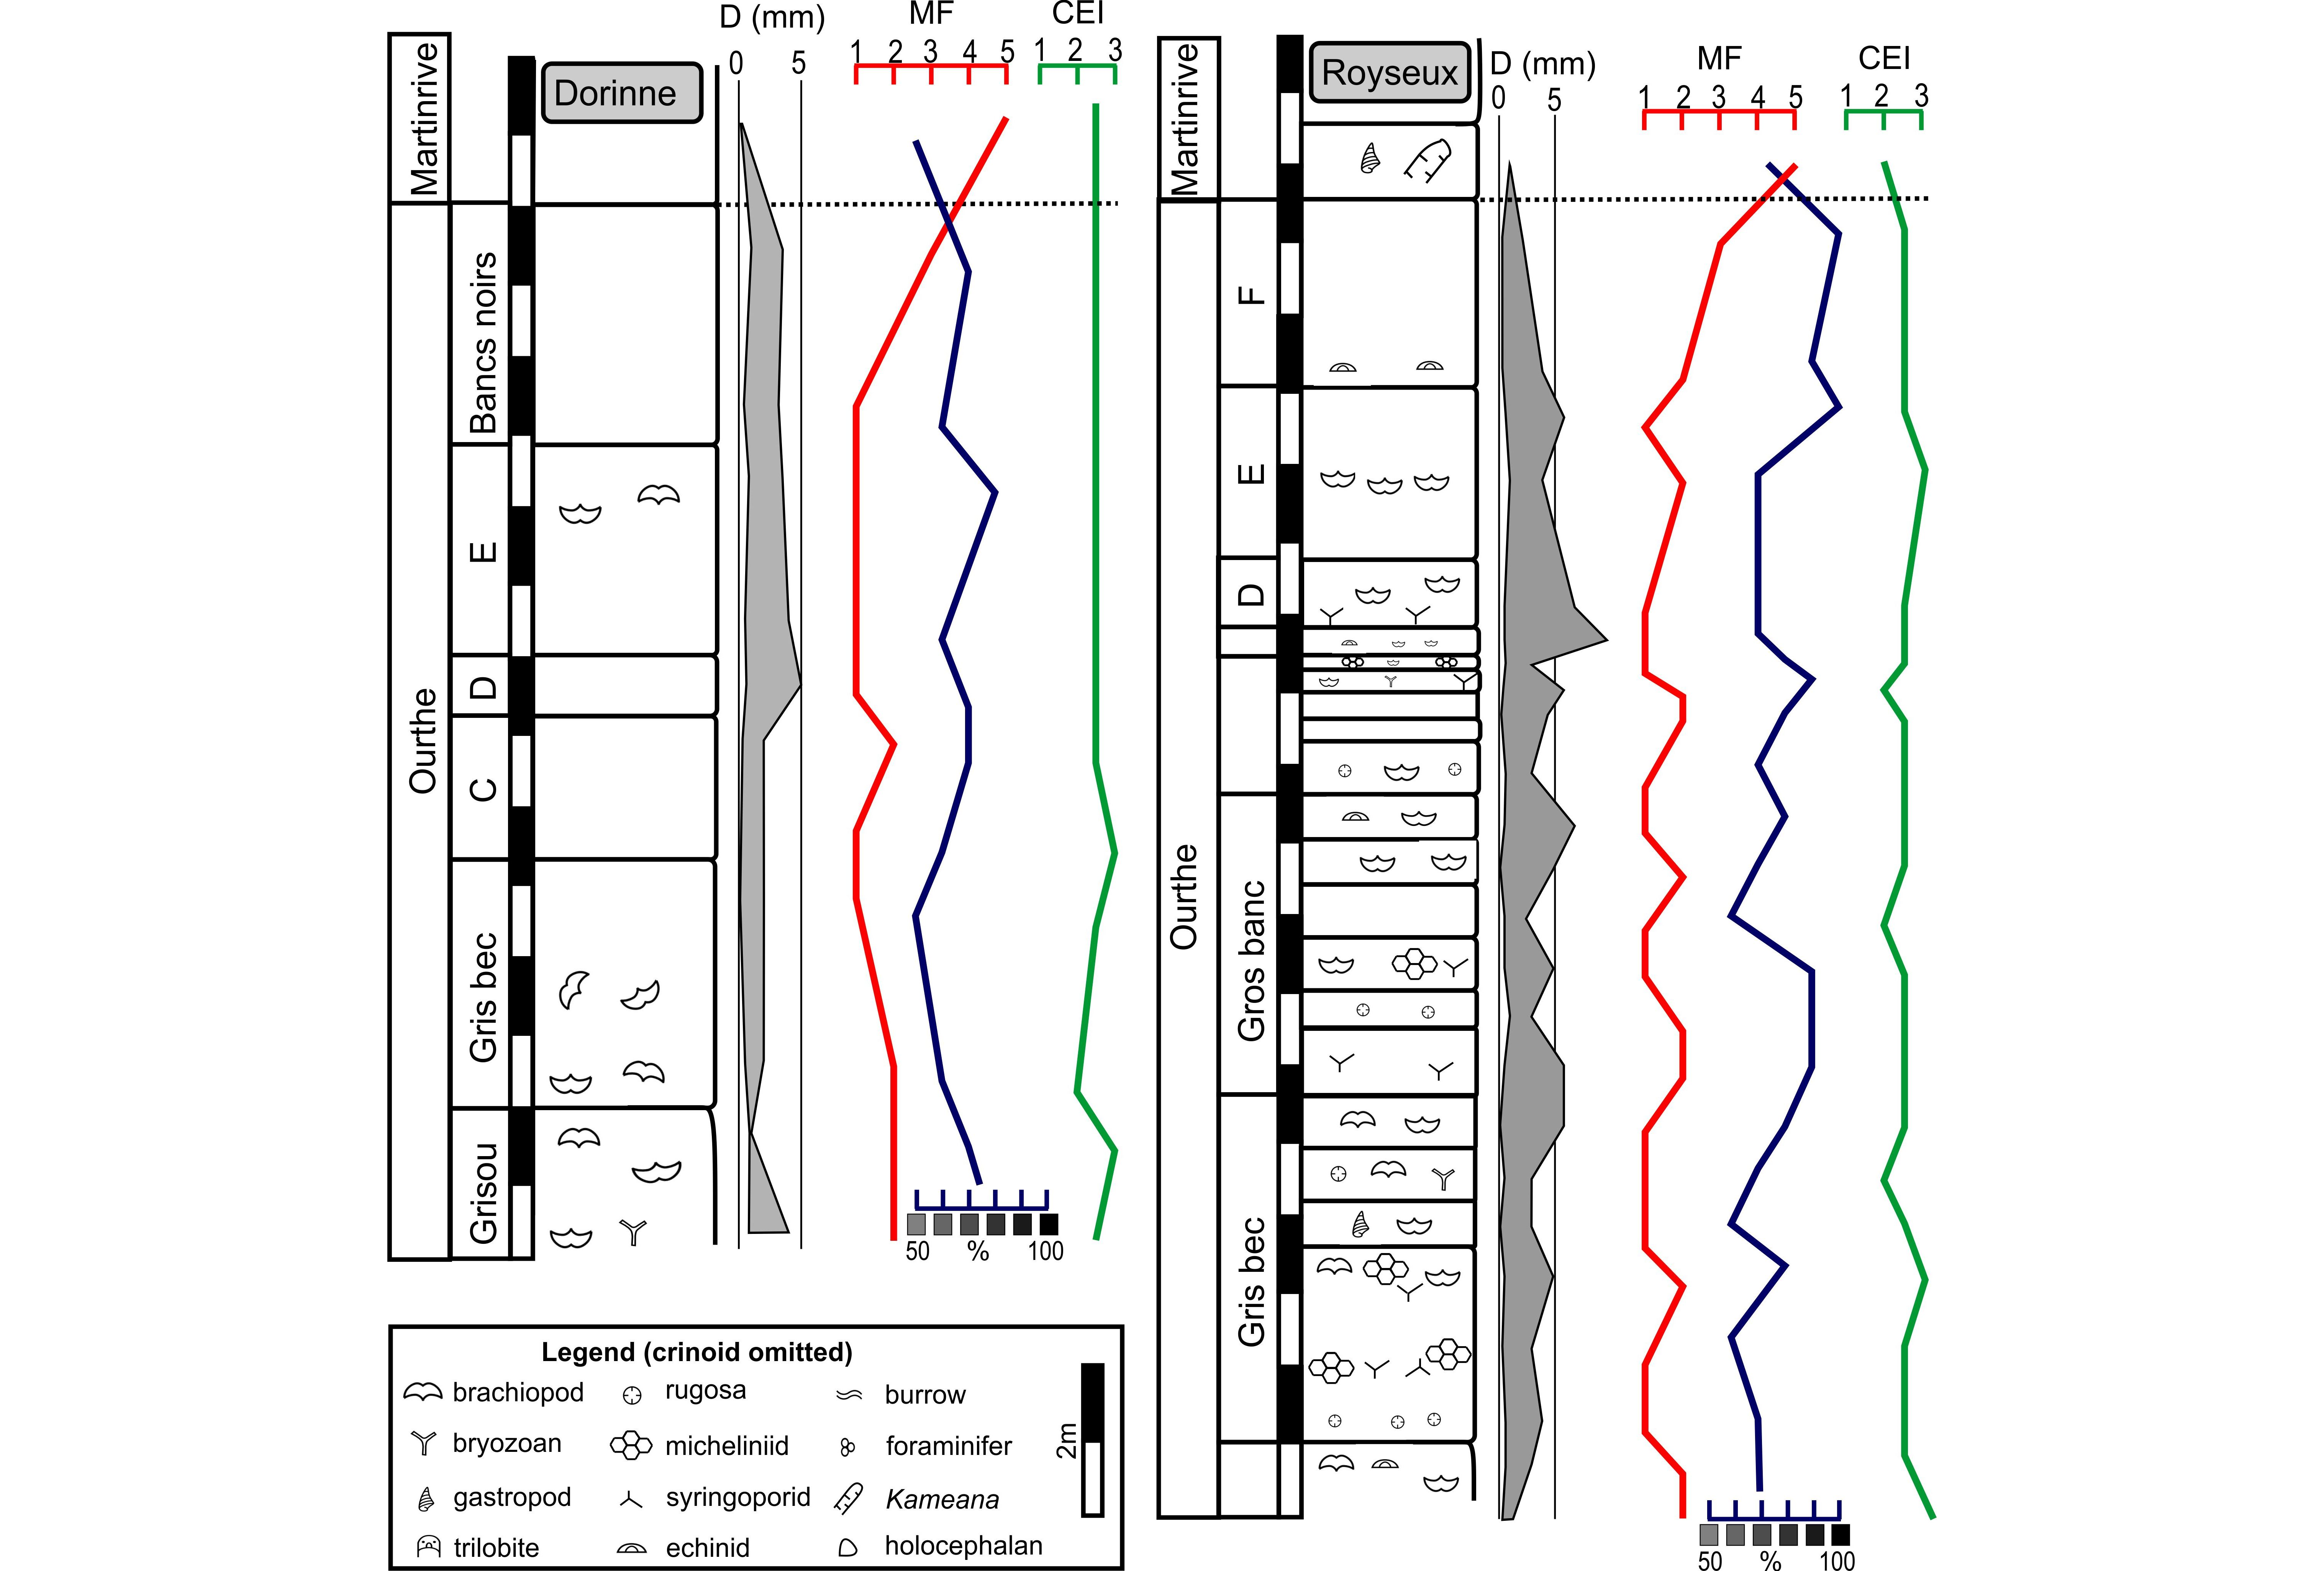 Palaeoecology Of The Upper Tournaisian Mississippian Crinoidal 1911 Pistol Diagram Http Wwwthefedoraloungecom Showthreadphp Schematic Profiles Ourthe Fm In Royseux Disused Quarry And Dorrine Legend Mf Microfacies See Main Text Cei Crinoid Erosion Index